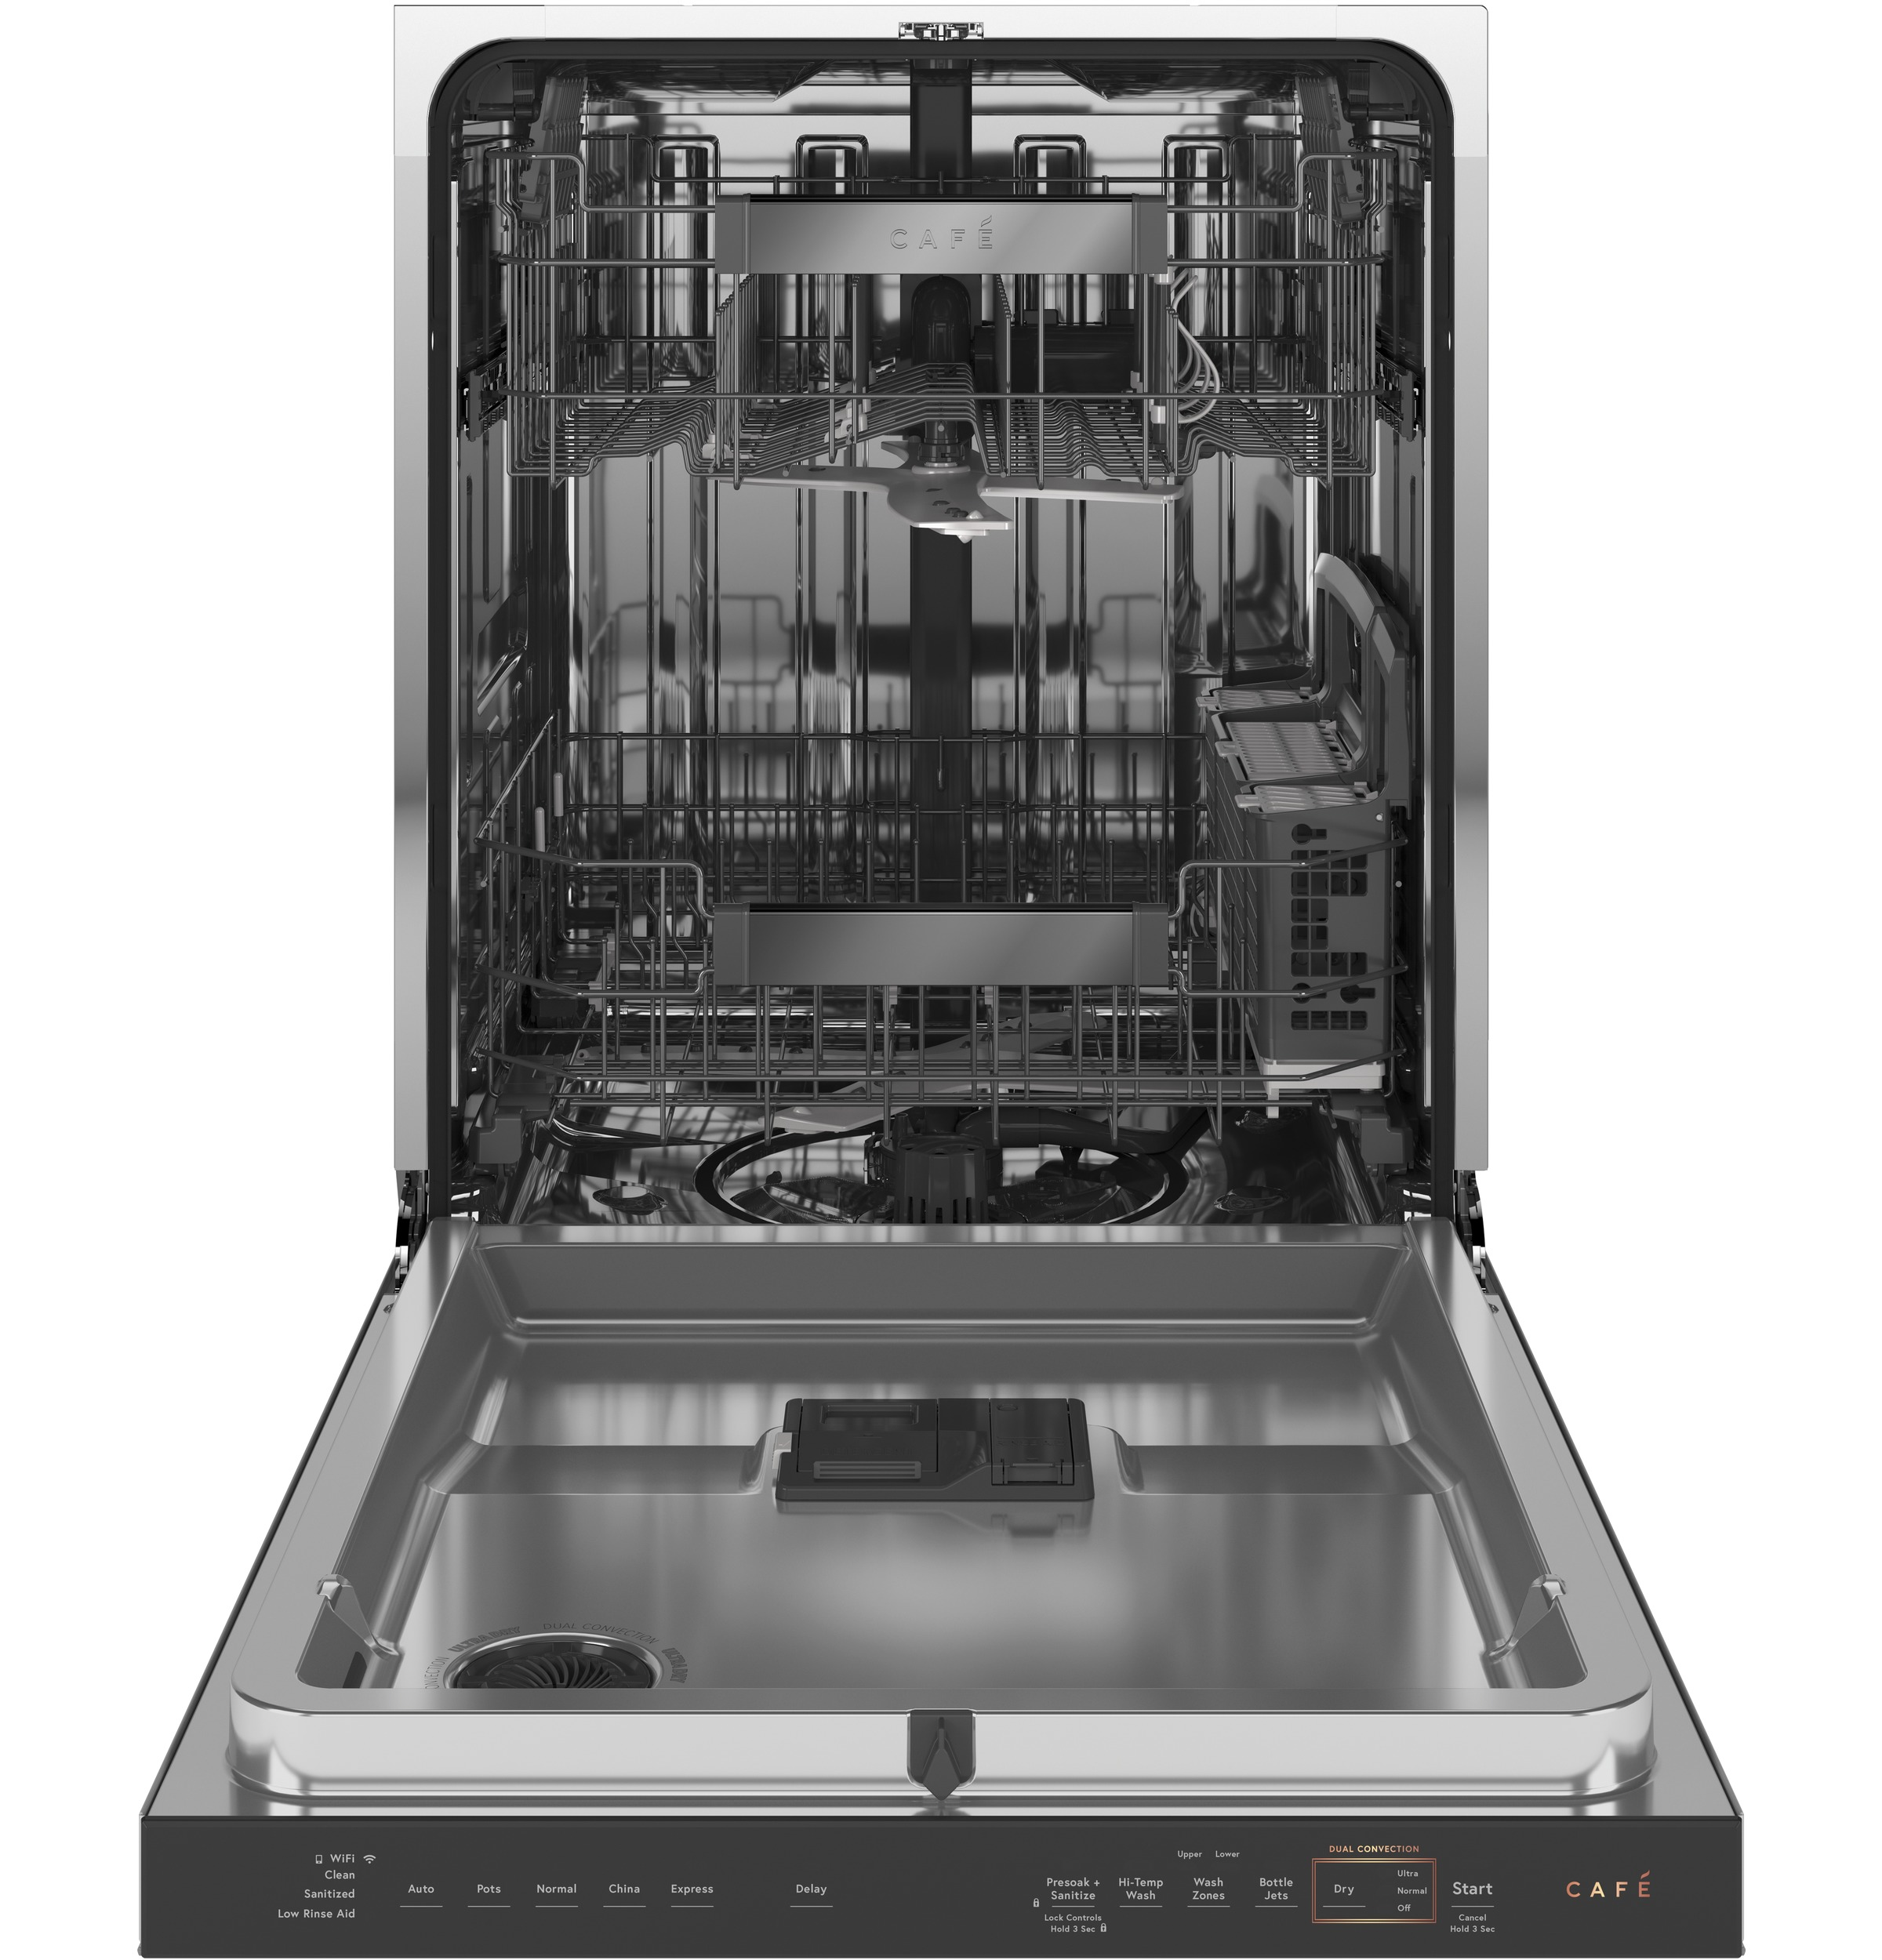 Model: CDT855M5NS5 | Cafe Café™ Smart Stainless Steel Interior Dishwasher with Sanitize and Ultra Wash & Dual Convection Ultra Dry in Platinum Glass